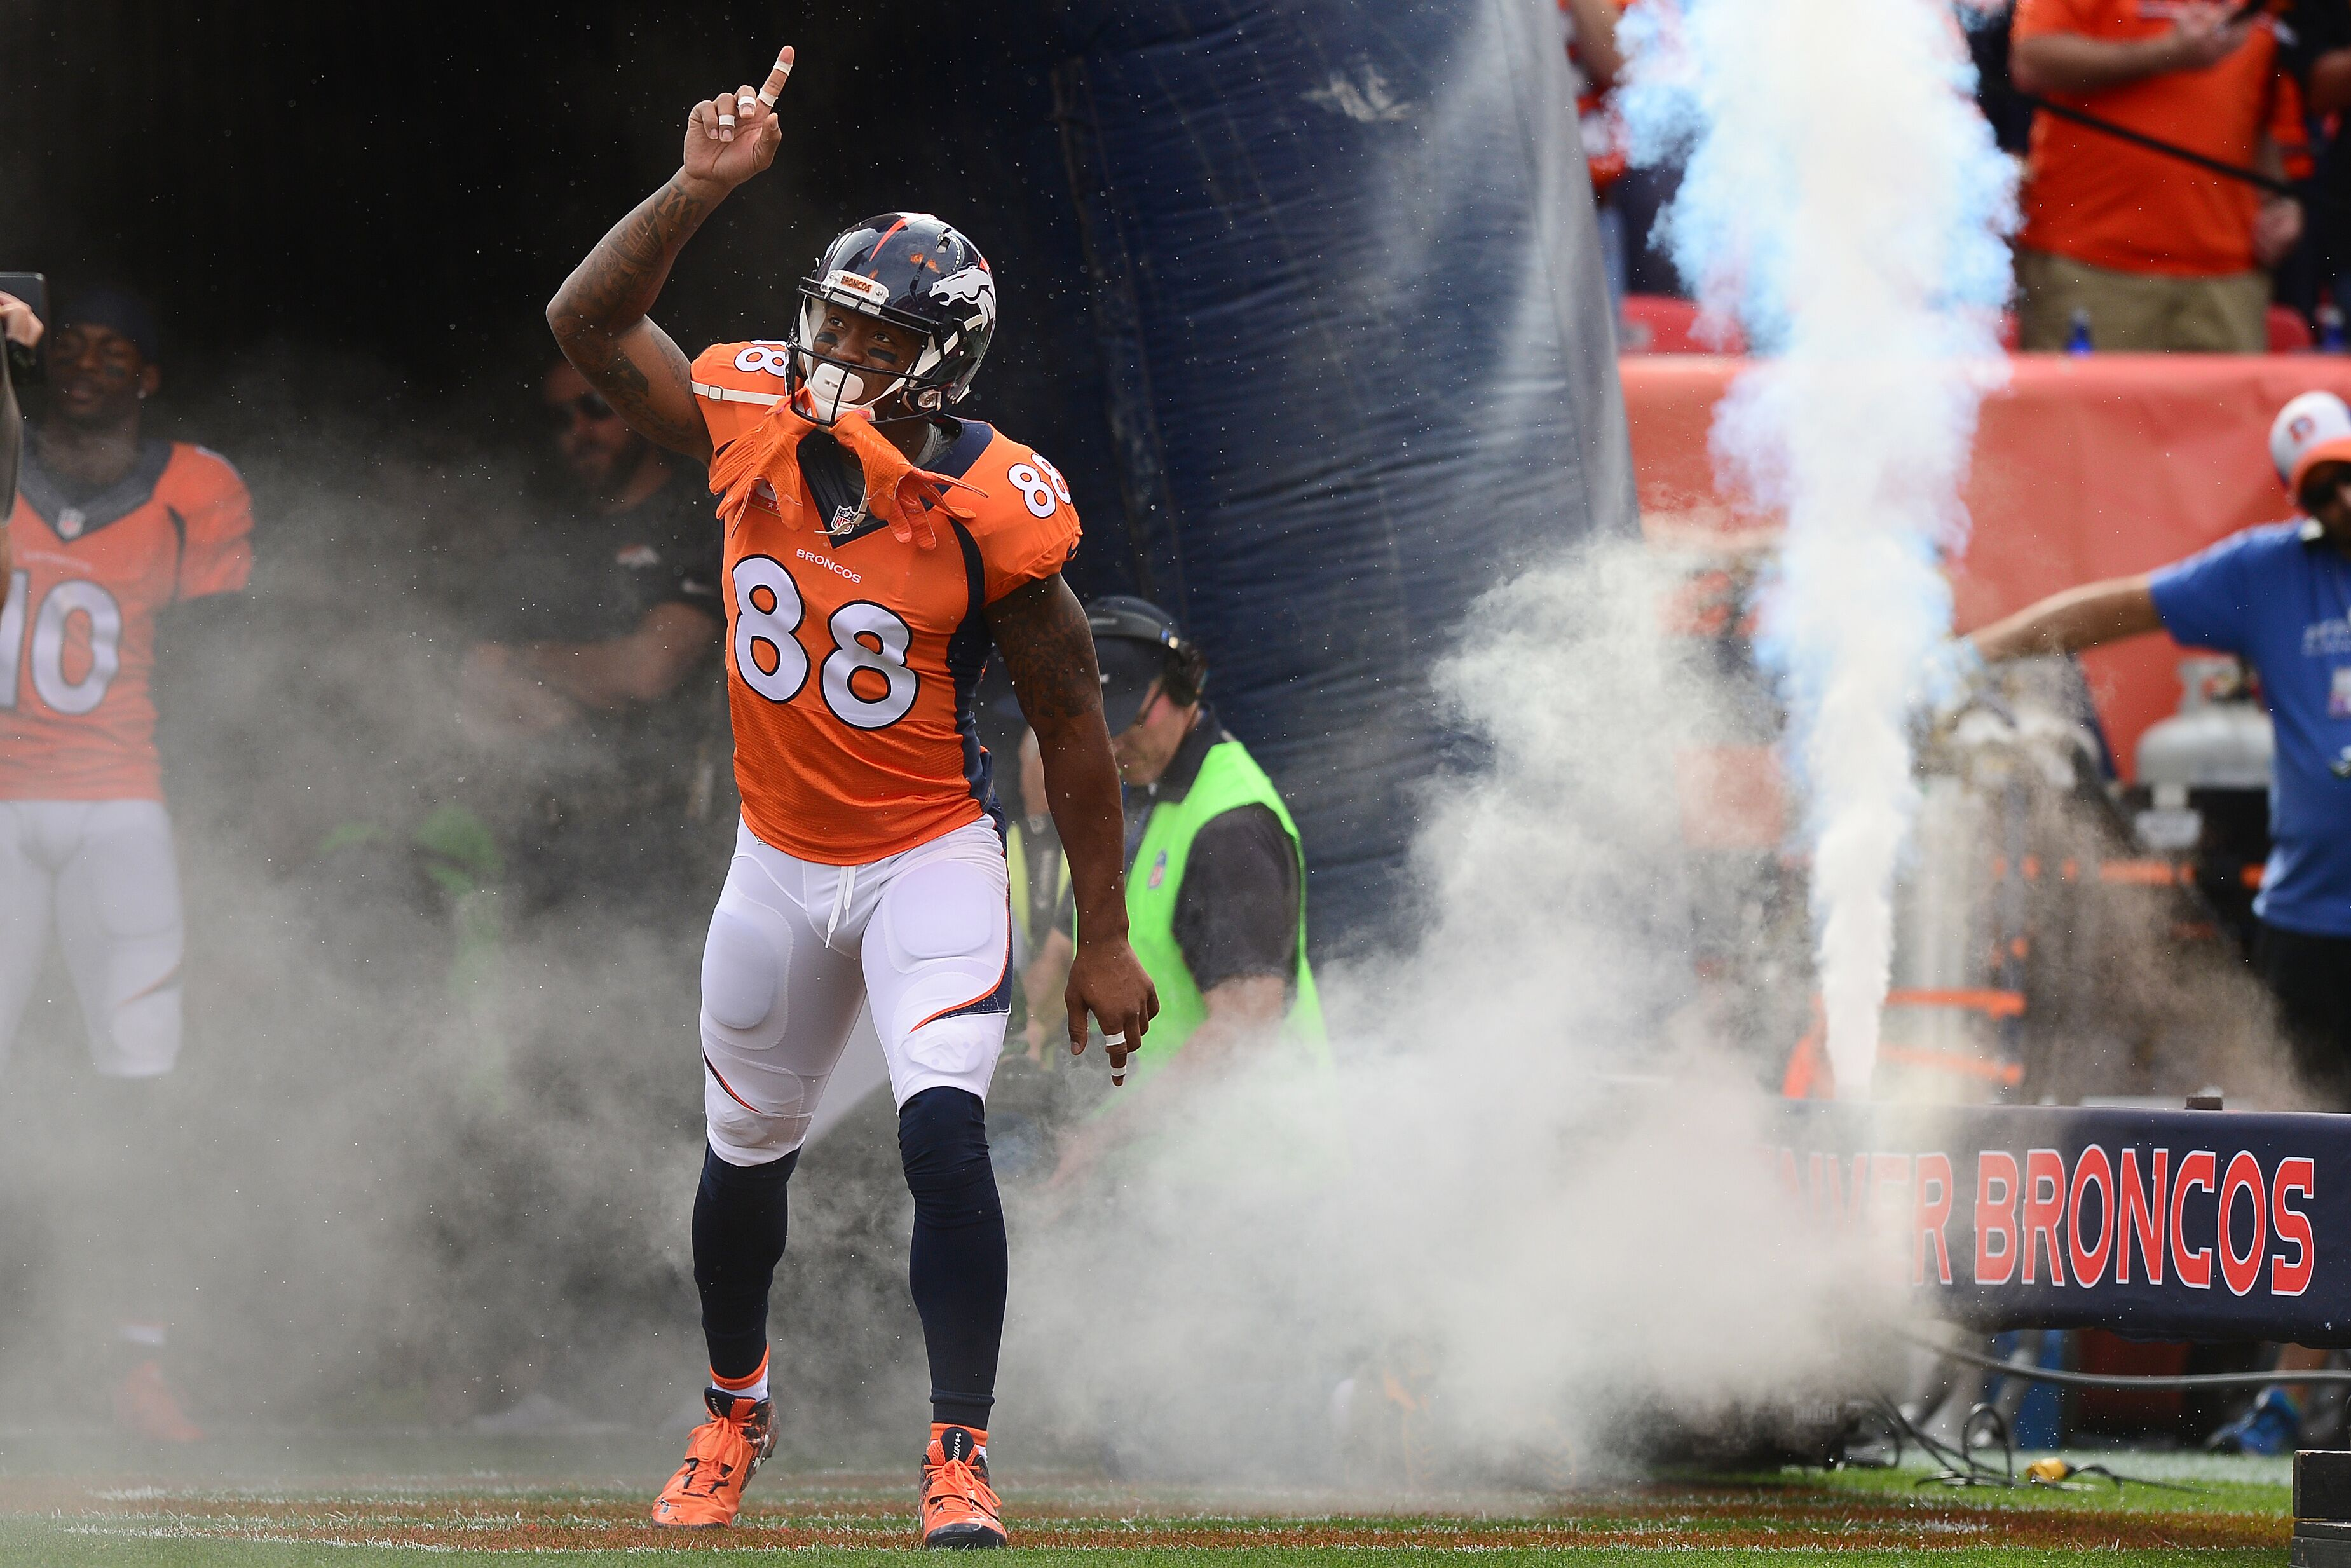 Why Broncos Wr Demaryius Thomas Is A Hall Of Famer